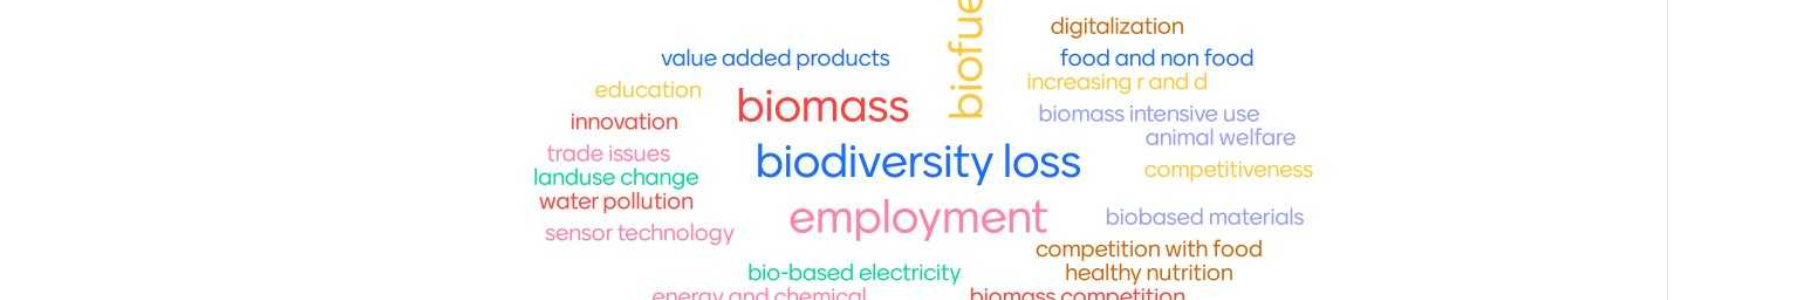 BIOEAST countries' experiences shared during the Global Bioeconomy Summit 2020